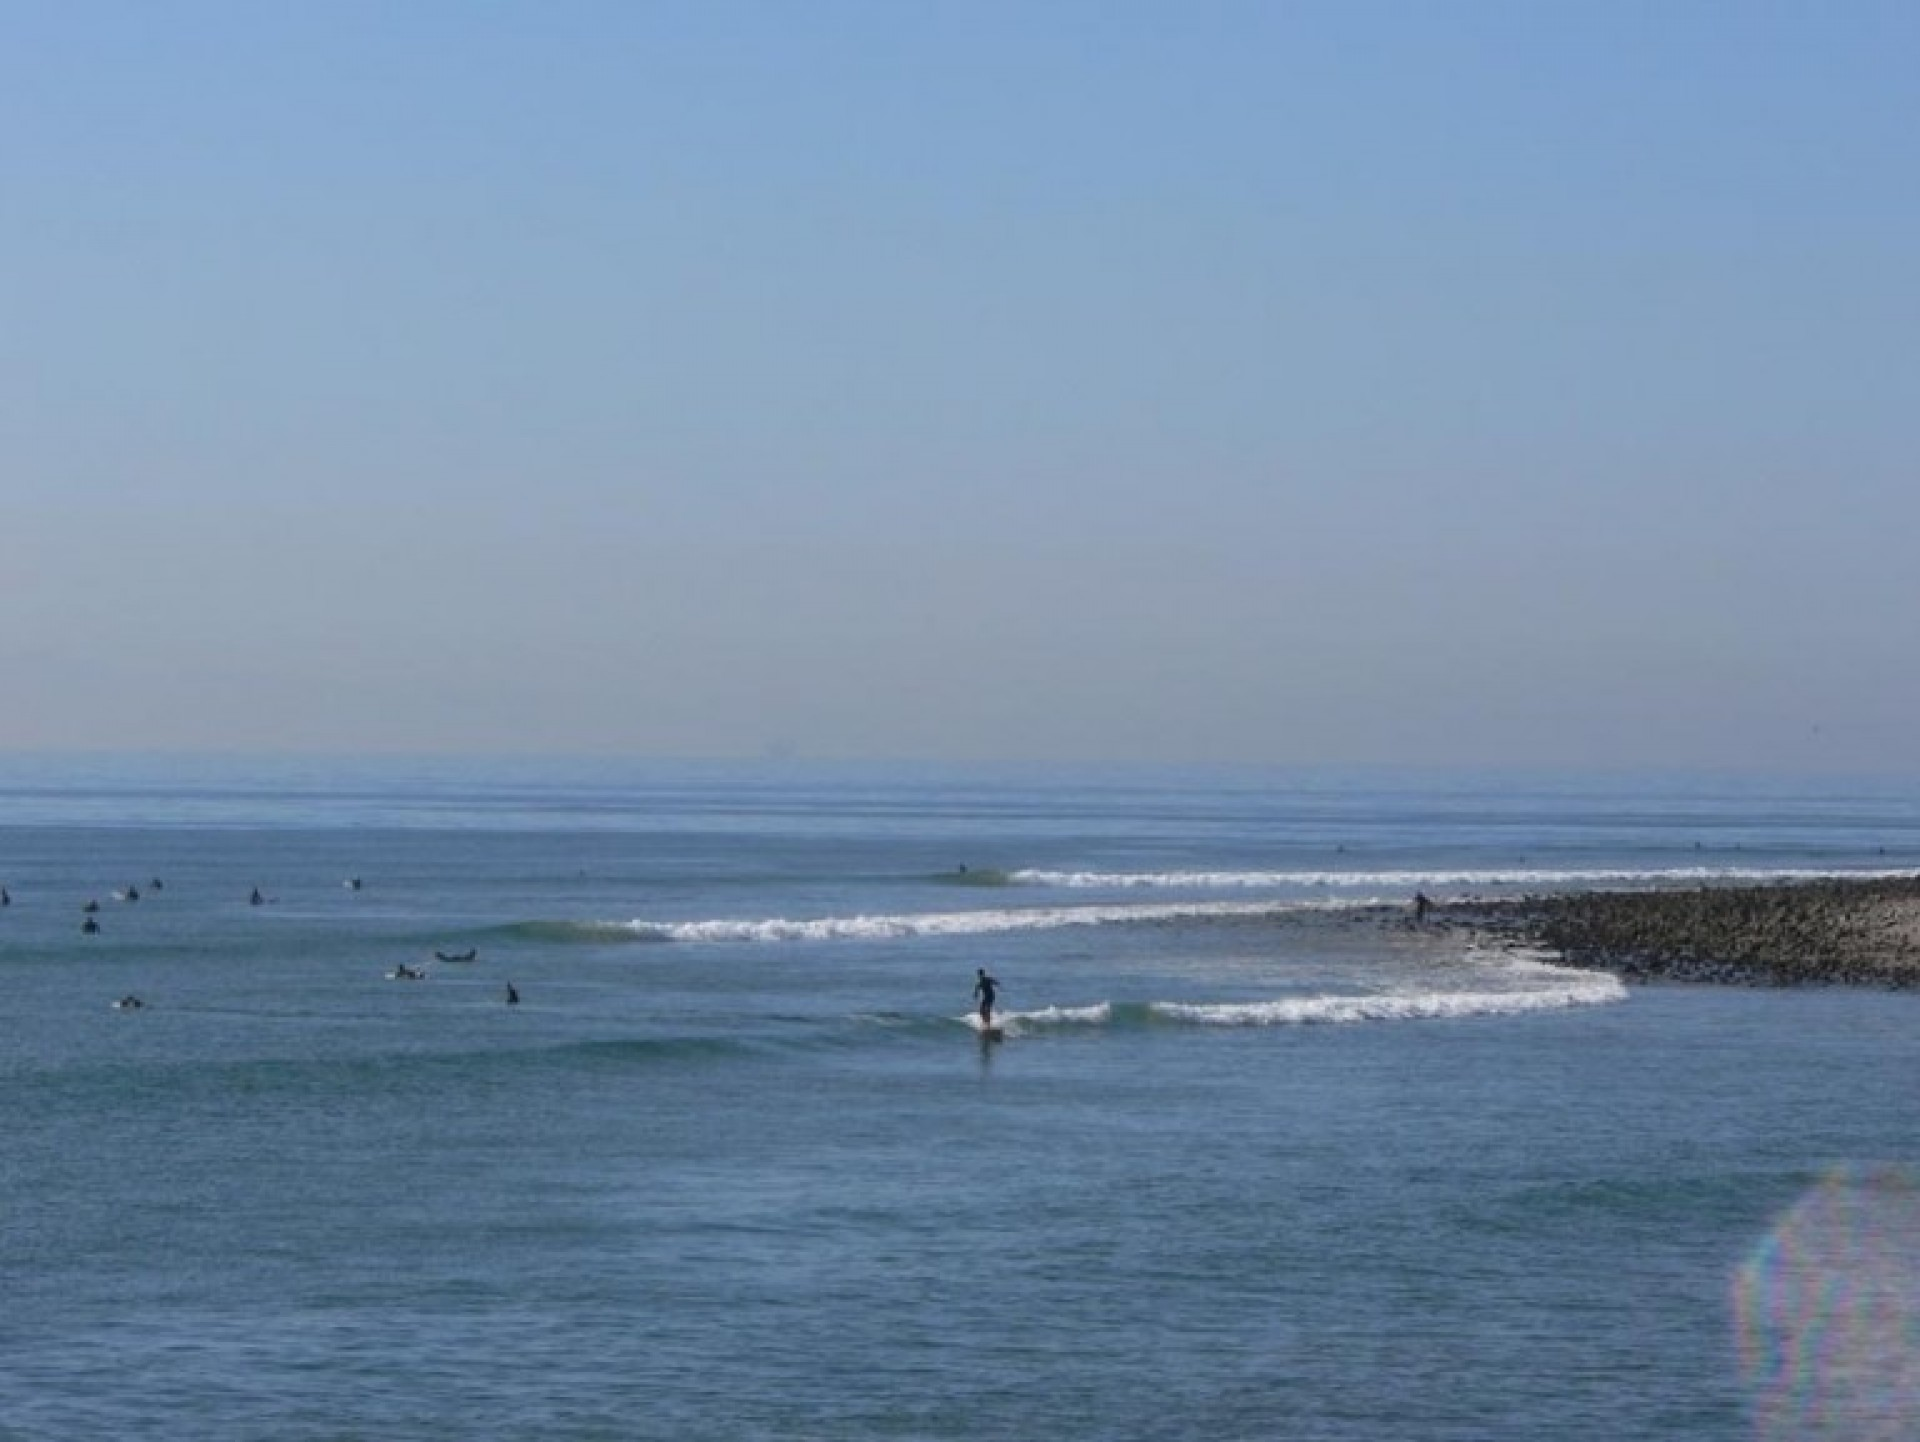 Andy Morrall's photo of Rincon Point